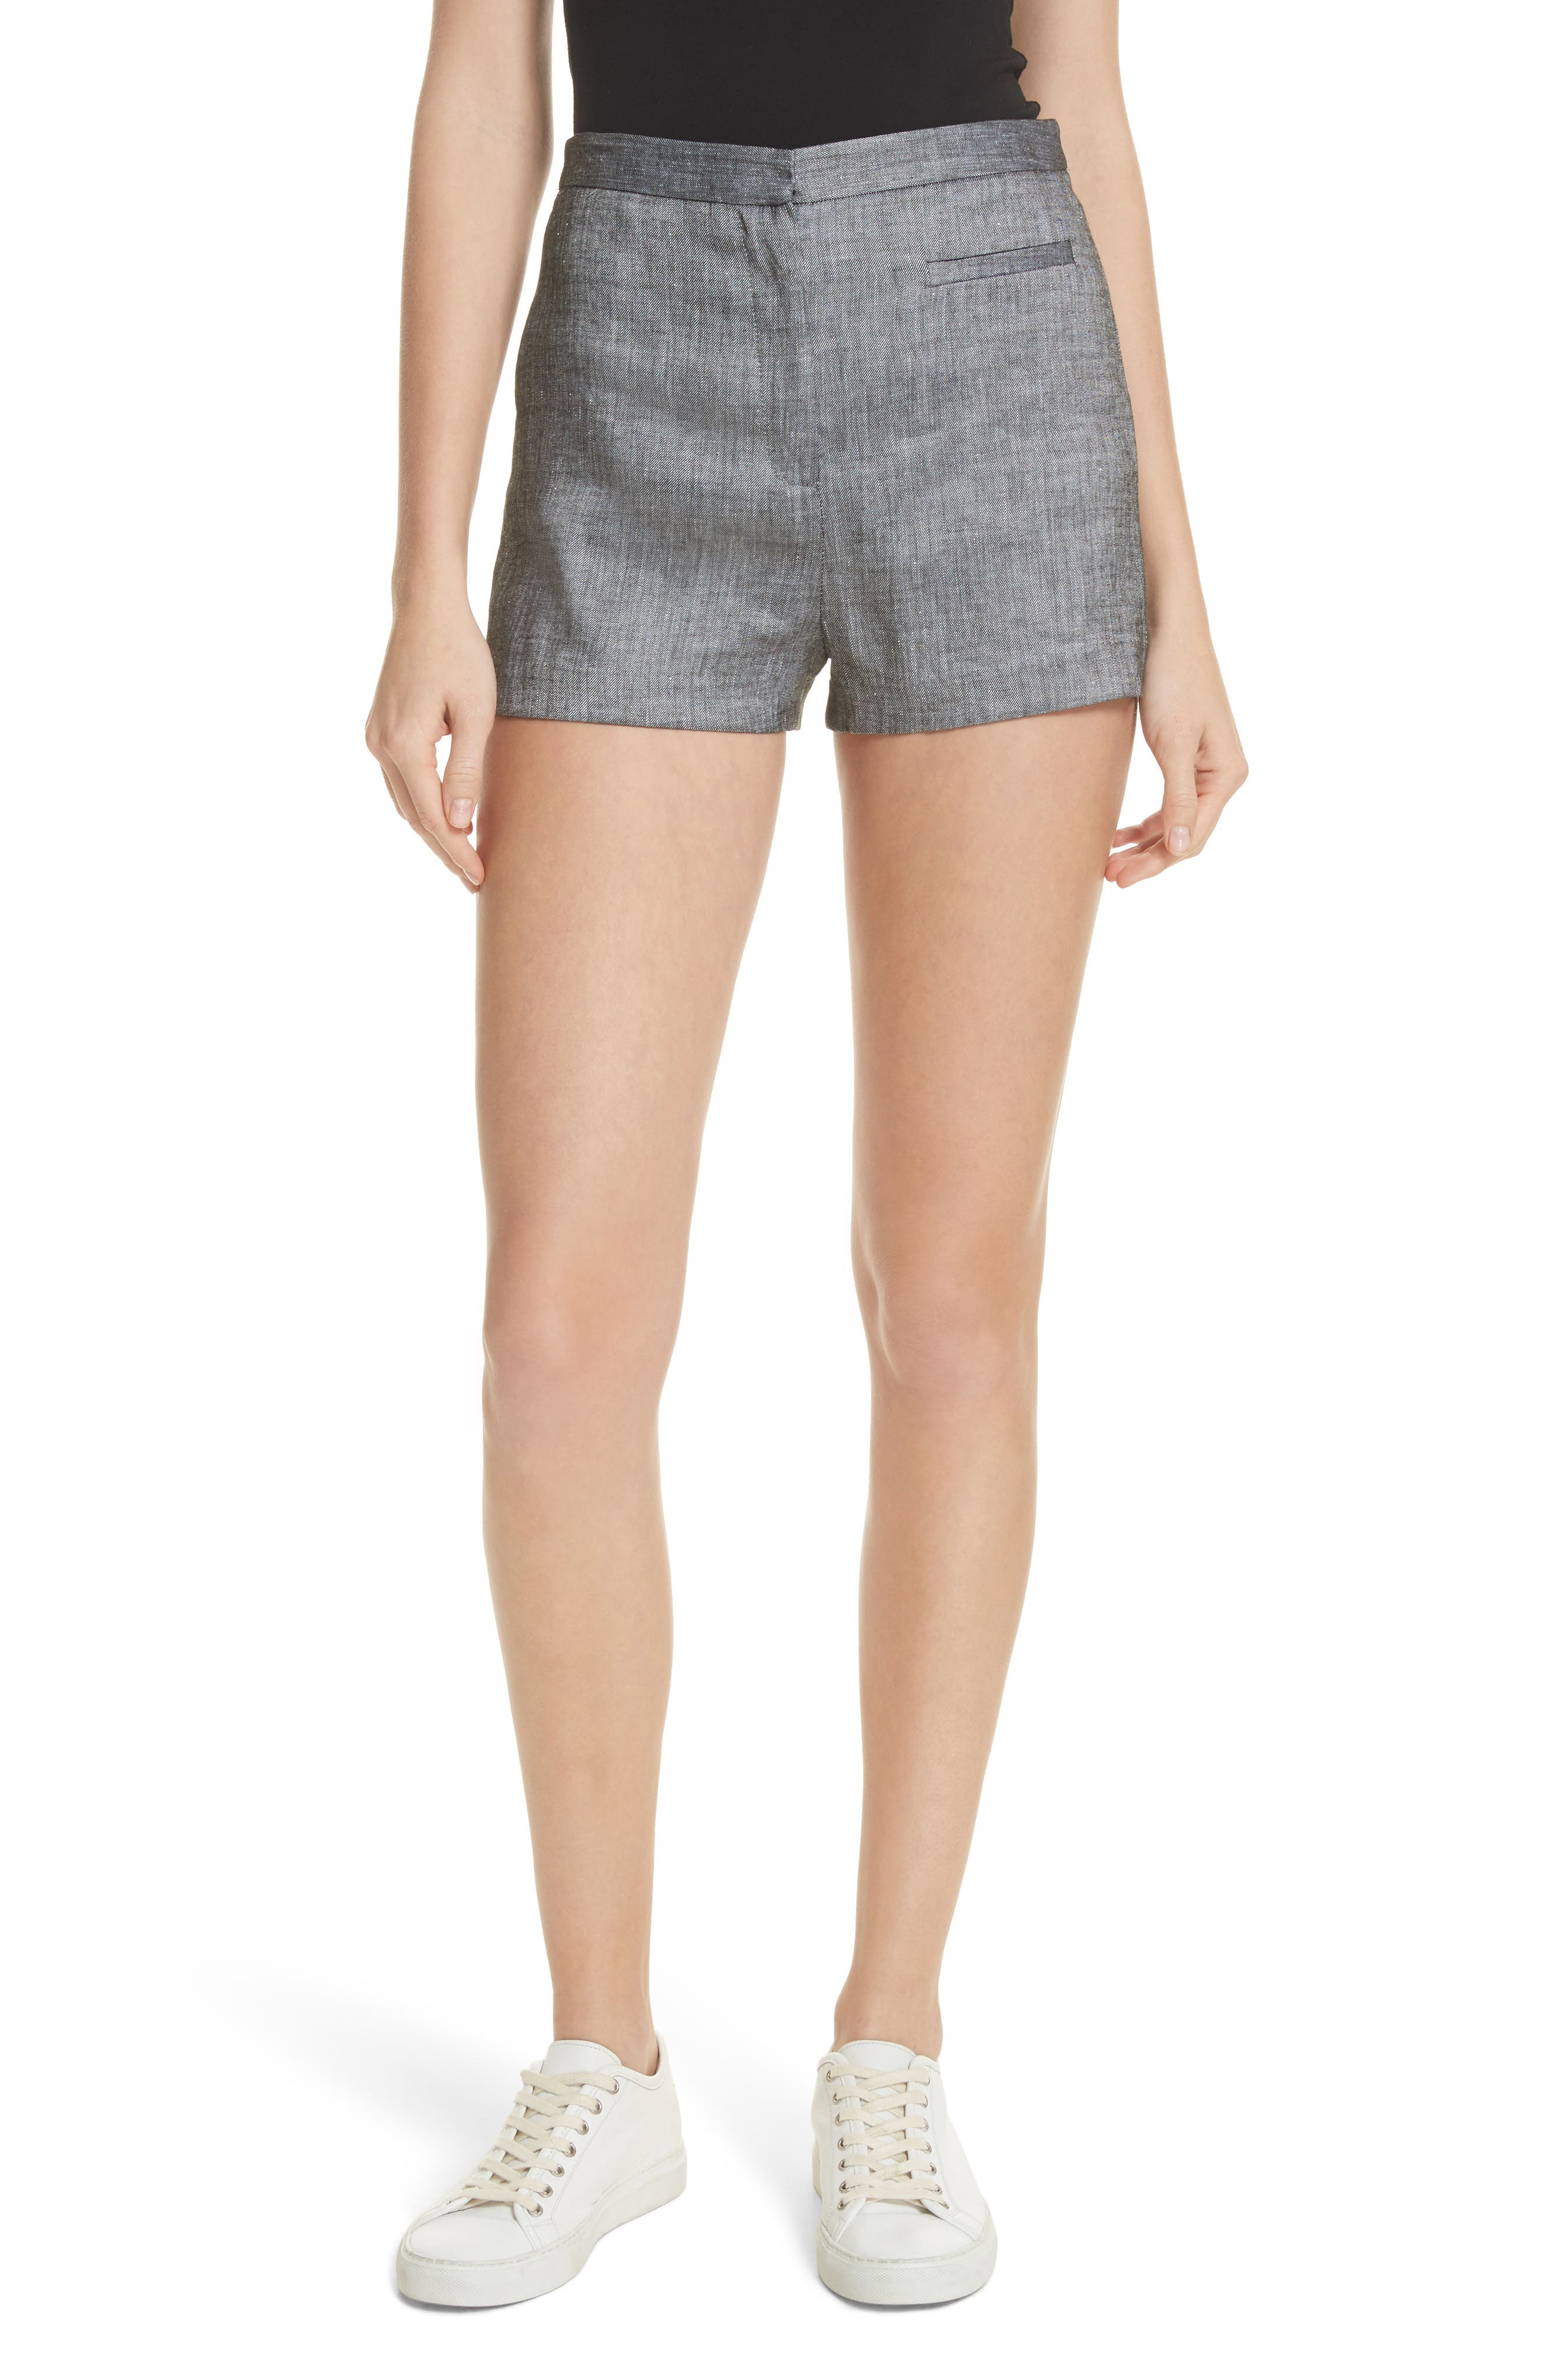 Trudee High Waist Shorts,                         Main,                         color, Olive